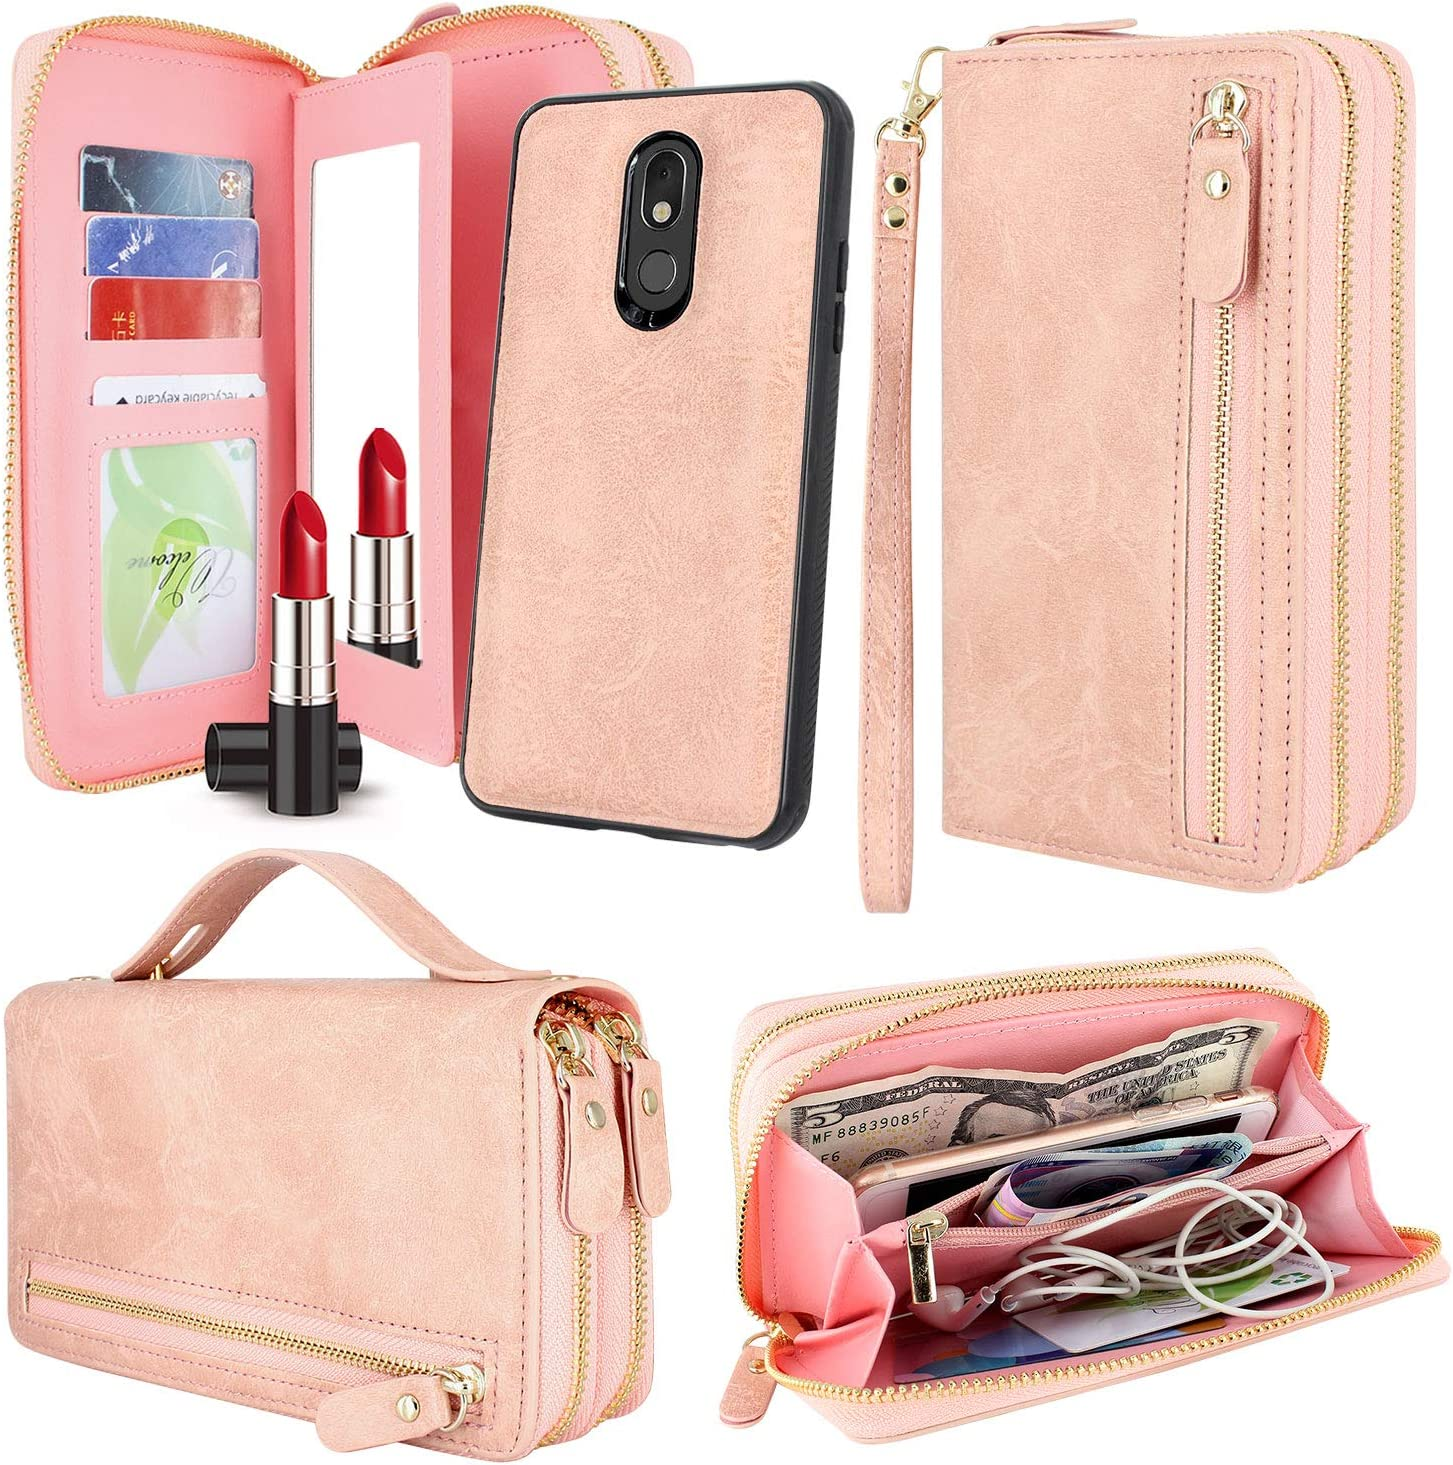 Harryshell Luxury Detachable Magnetic Zipper Wallet Case Clutch Purse with Card Slots Mirror Hand Strap for LG Stylo 5 / Stylo 5 Plus (Zipper Pink)